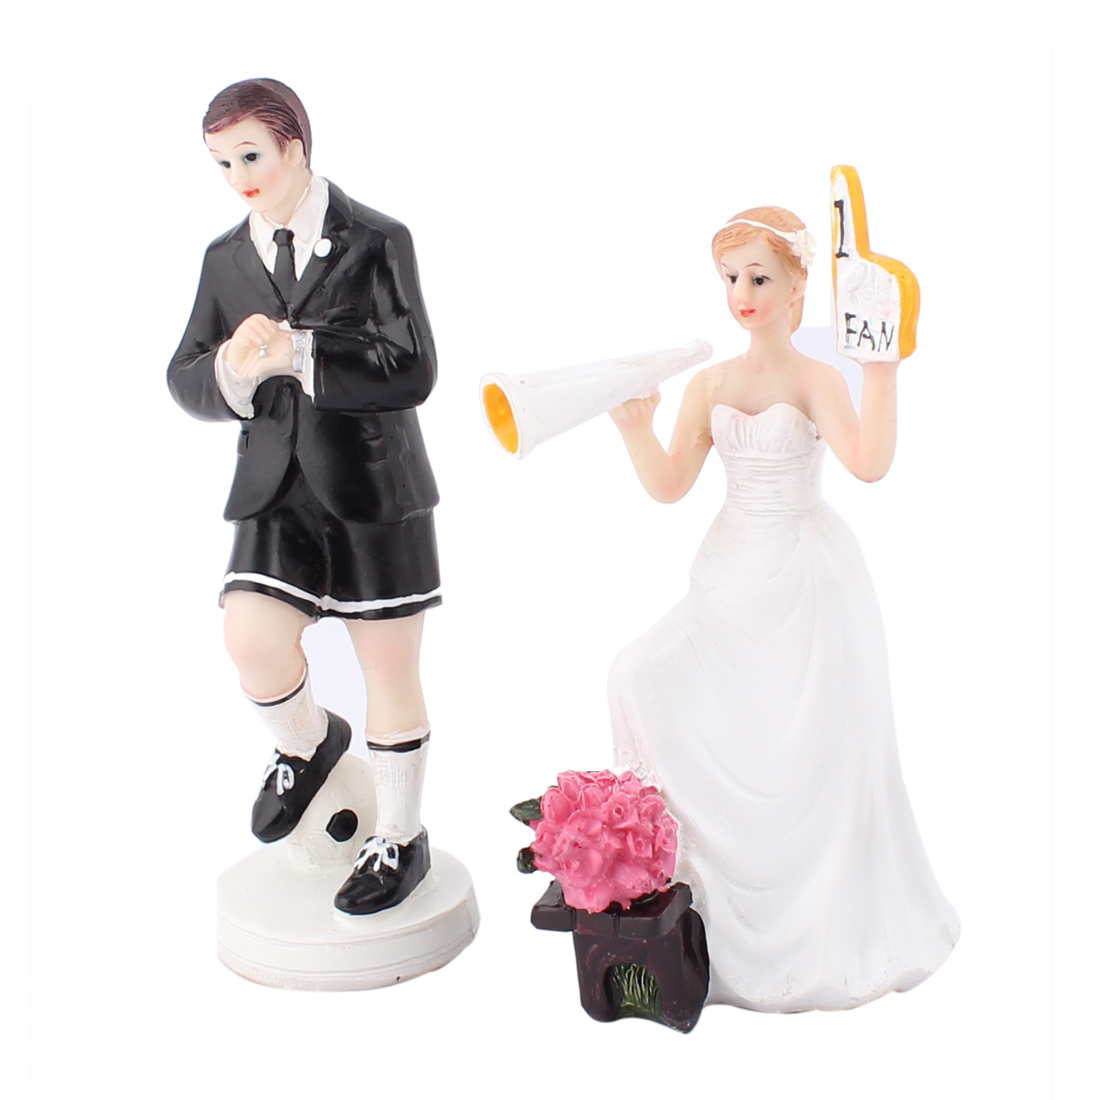 Soccer Player Groom Cheering Bride Figurine Wedding Cake Topper Decoration Gift